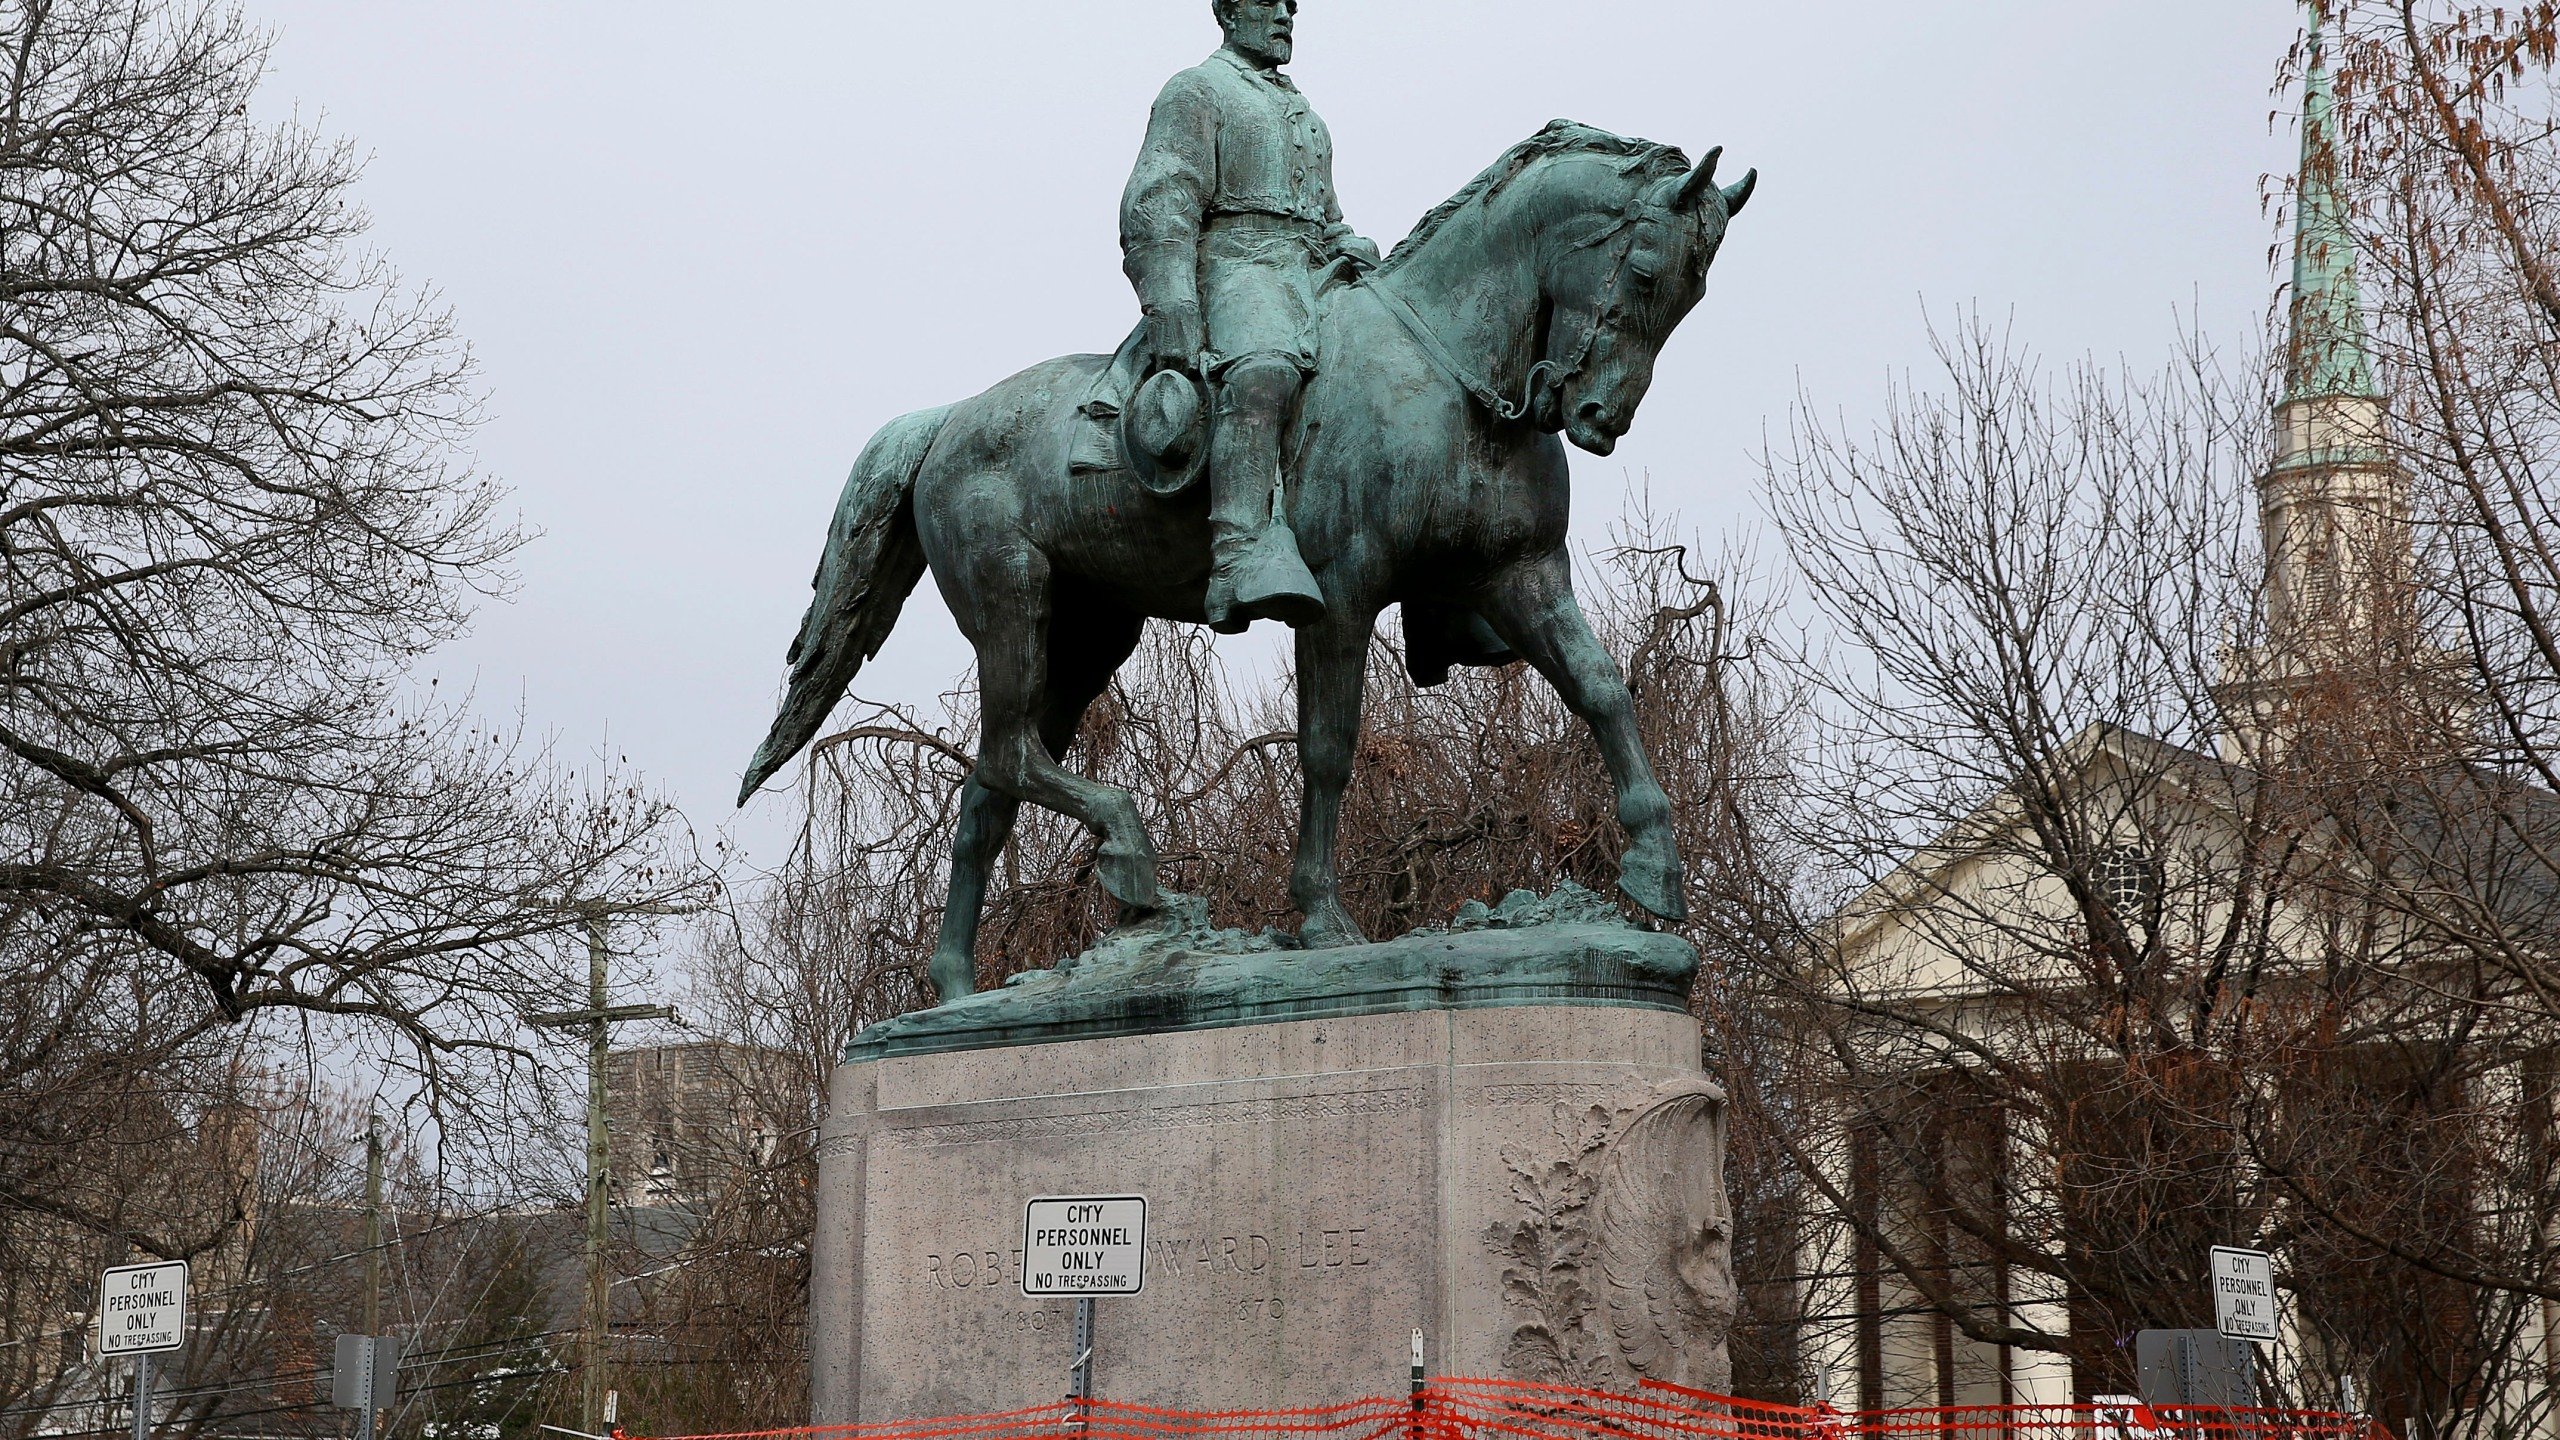 """FILE - The statue of Robert E. Lee is seen uncovered in Emancipation Park in Charlottesville, Va., on Wednesday, Feb. 28, 2018. Charlottesville said in a news release Friday, July 9, 2021, that the equestrian statue of Confederate Gen. Robert E. Lee as well as a nearby one of Confederate Gen. Thomas """"Stonewall"""" Jackson will be taken down Saturday. (Zack Wajsgras/The Daily Progress via AP)"""